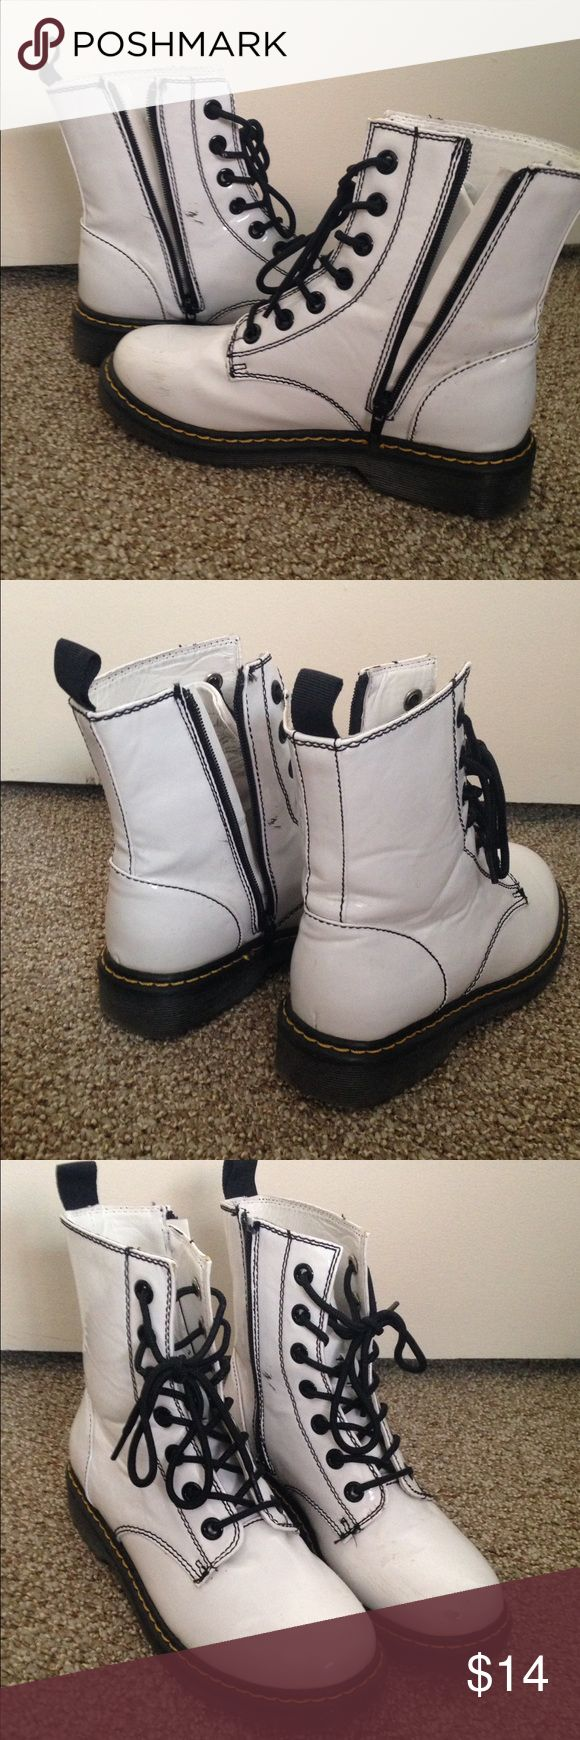 Doc Marten style white boots A few scuffs on the hard plastic material but still look great! They're very sturdy Shoes Combat & Moto Boots